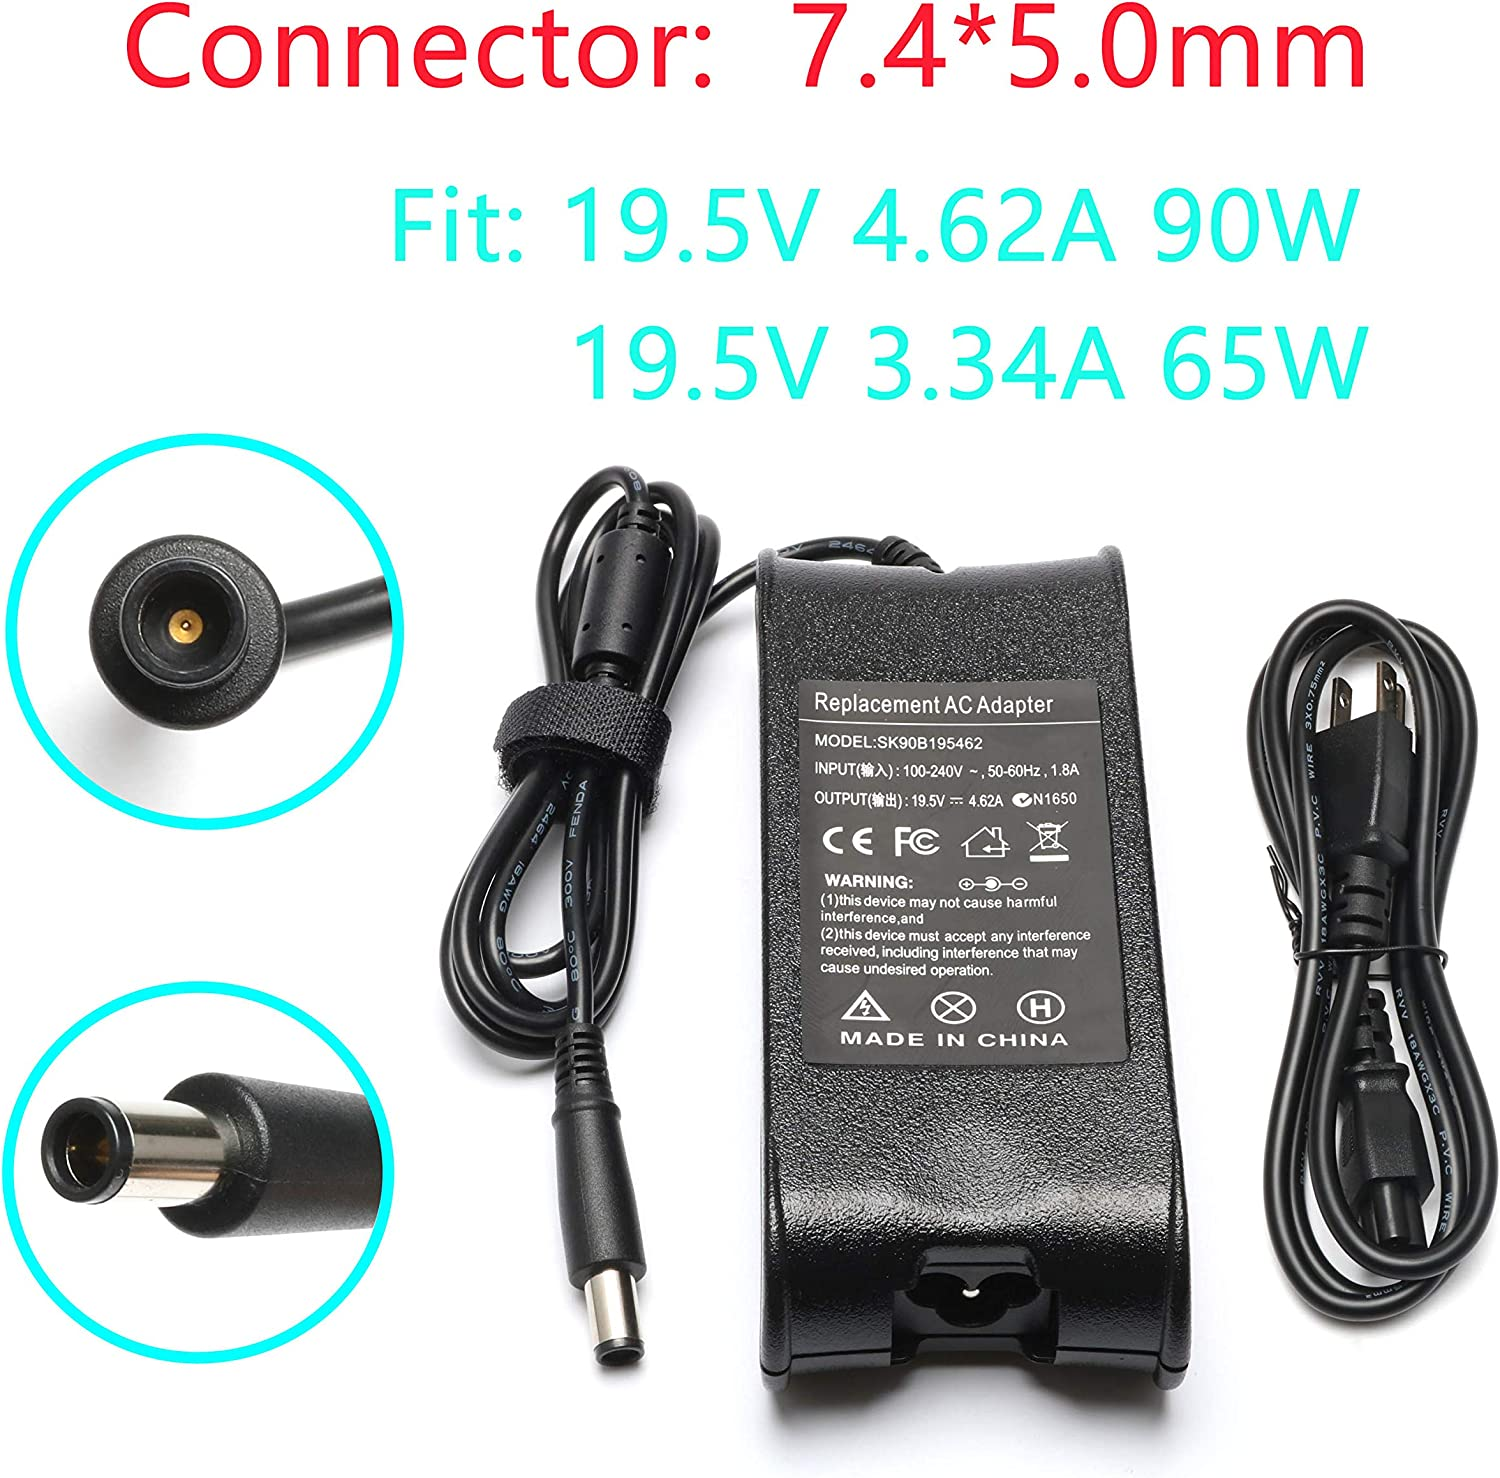 19.5V 4.62A 90W Laptop Charger for Dell Latitude E6320 E6510 E6420 E6430 E6330 E6440 E6400 E7440 E5450 E7450 E7240 E6410 E6520 E6540 E5540 E5430 E4310 E5550 E5530 E6500 E5400,PA 12 LA90PM111 LA65NM130